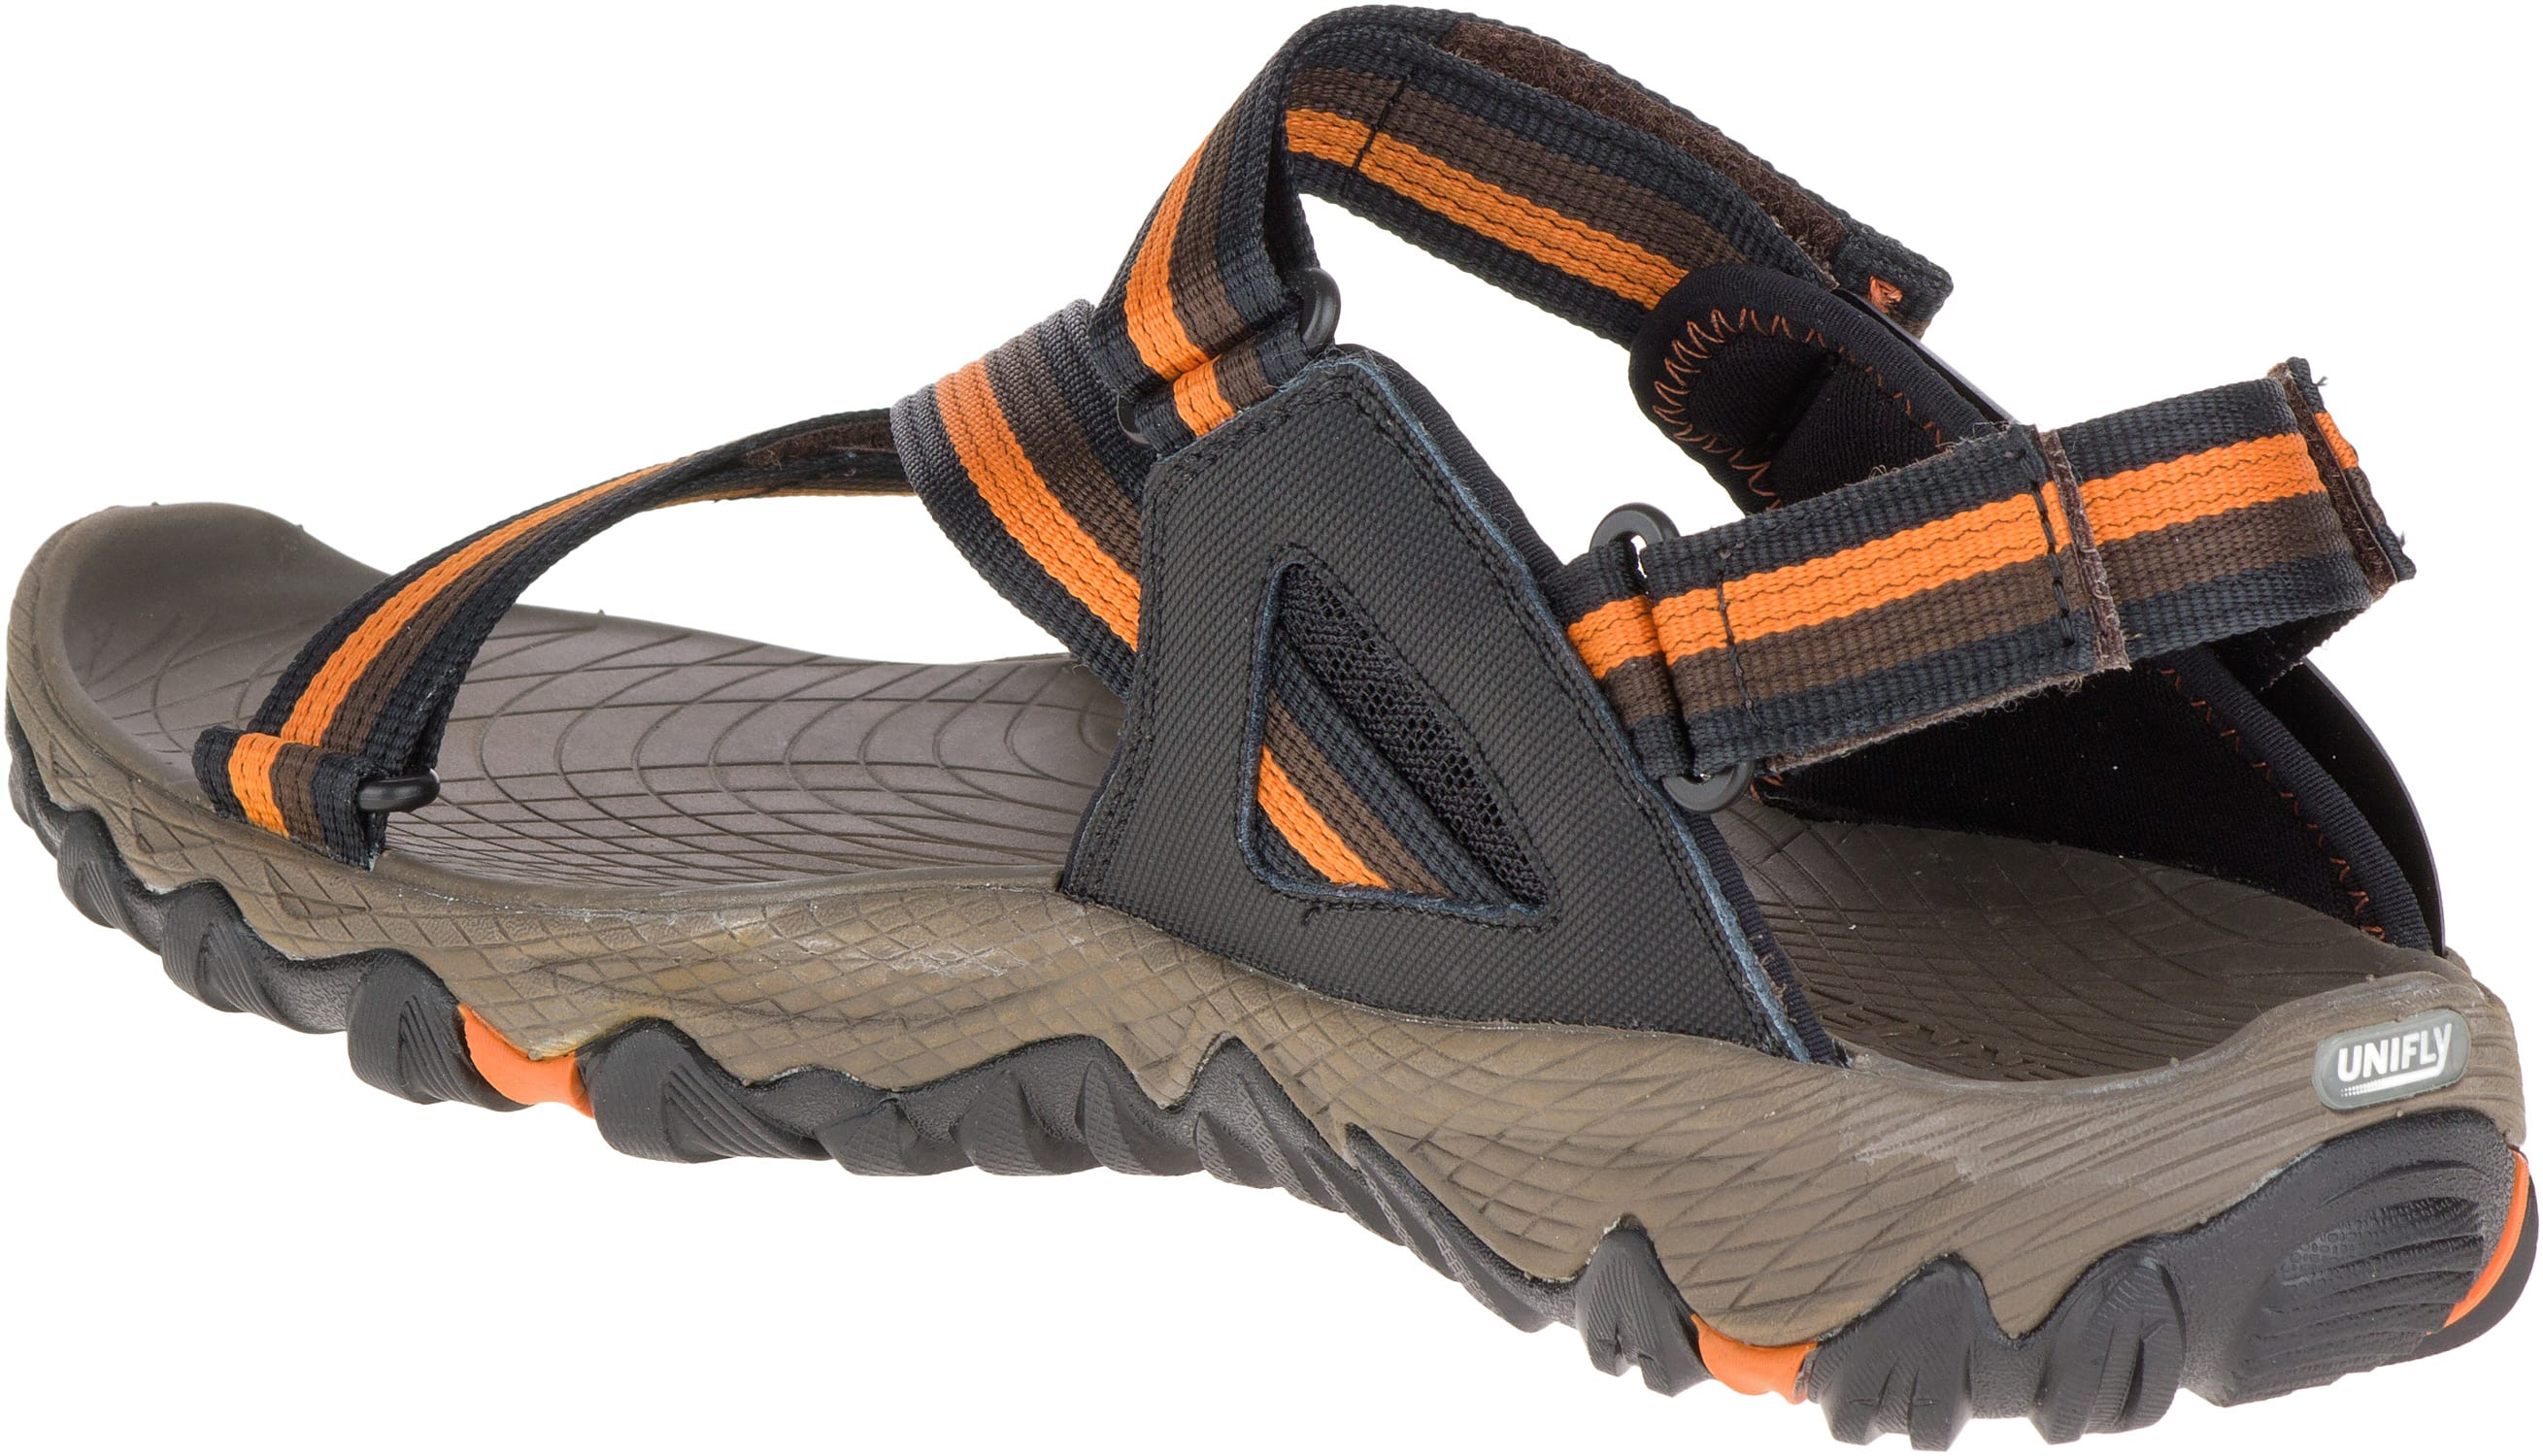 b81900df859 Merrell All Out Blaze Web Sandals - thumbnail 2